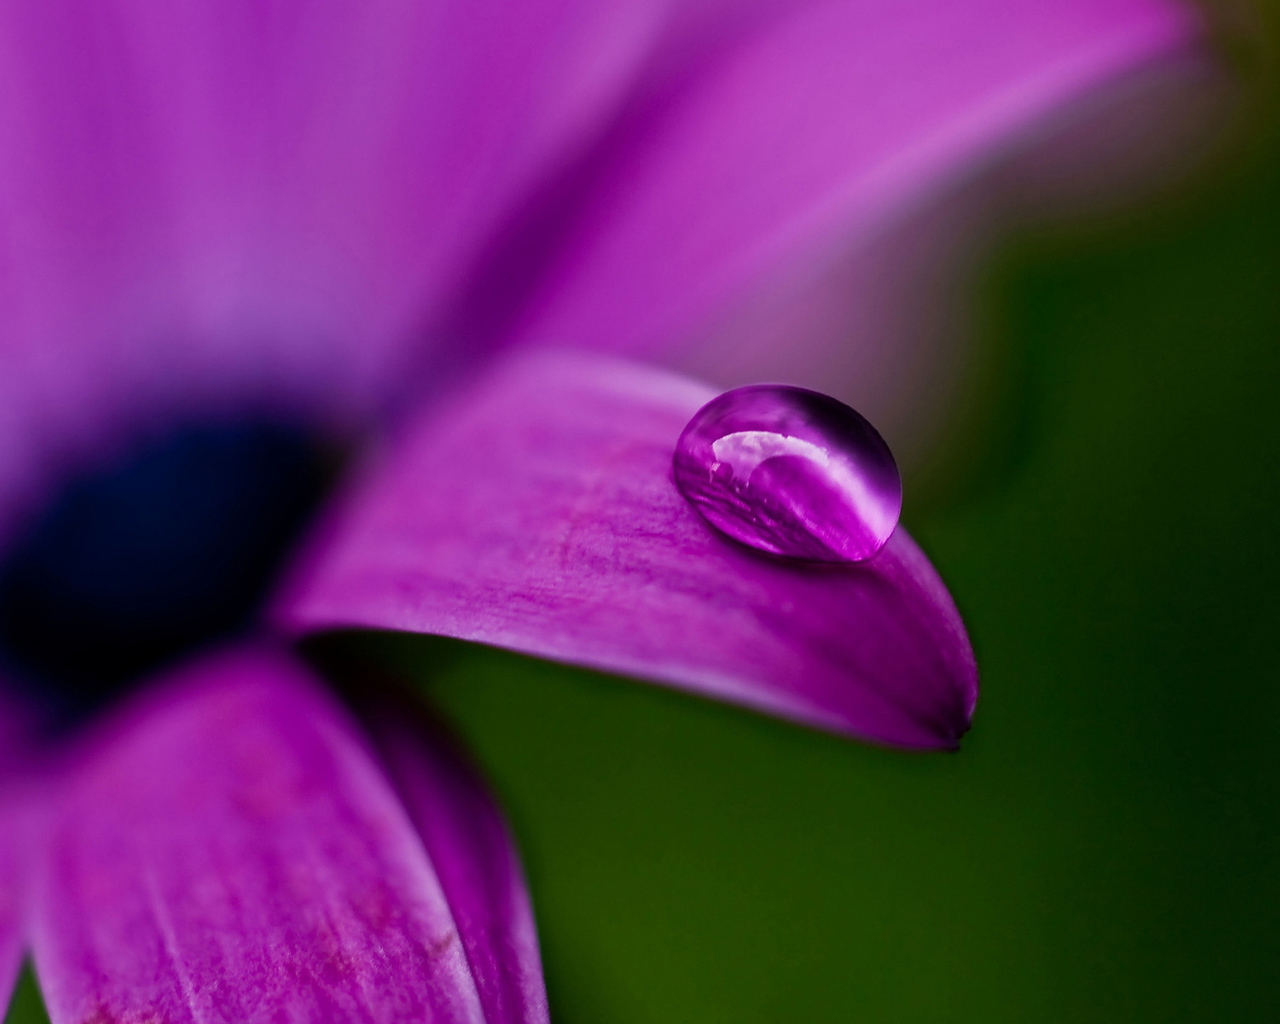 Water drop on purple flower